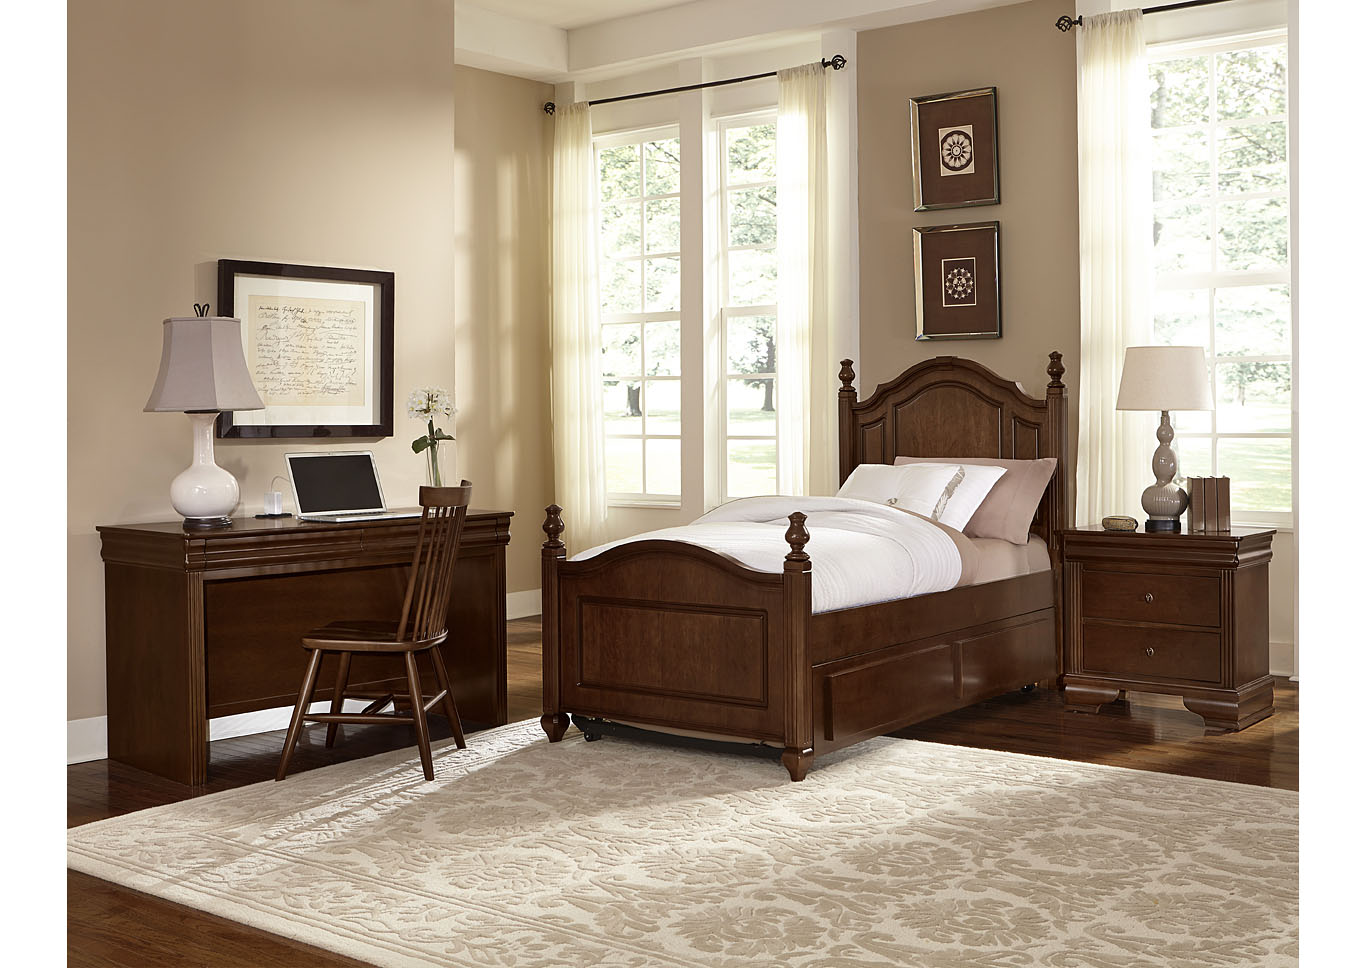 French Market French Cherry Twin Sleigh Bed,Vaughan-Bassett